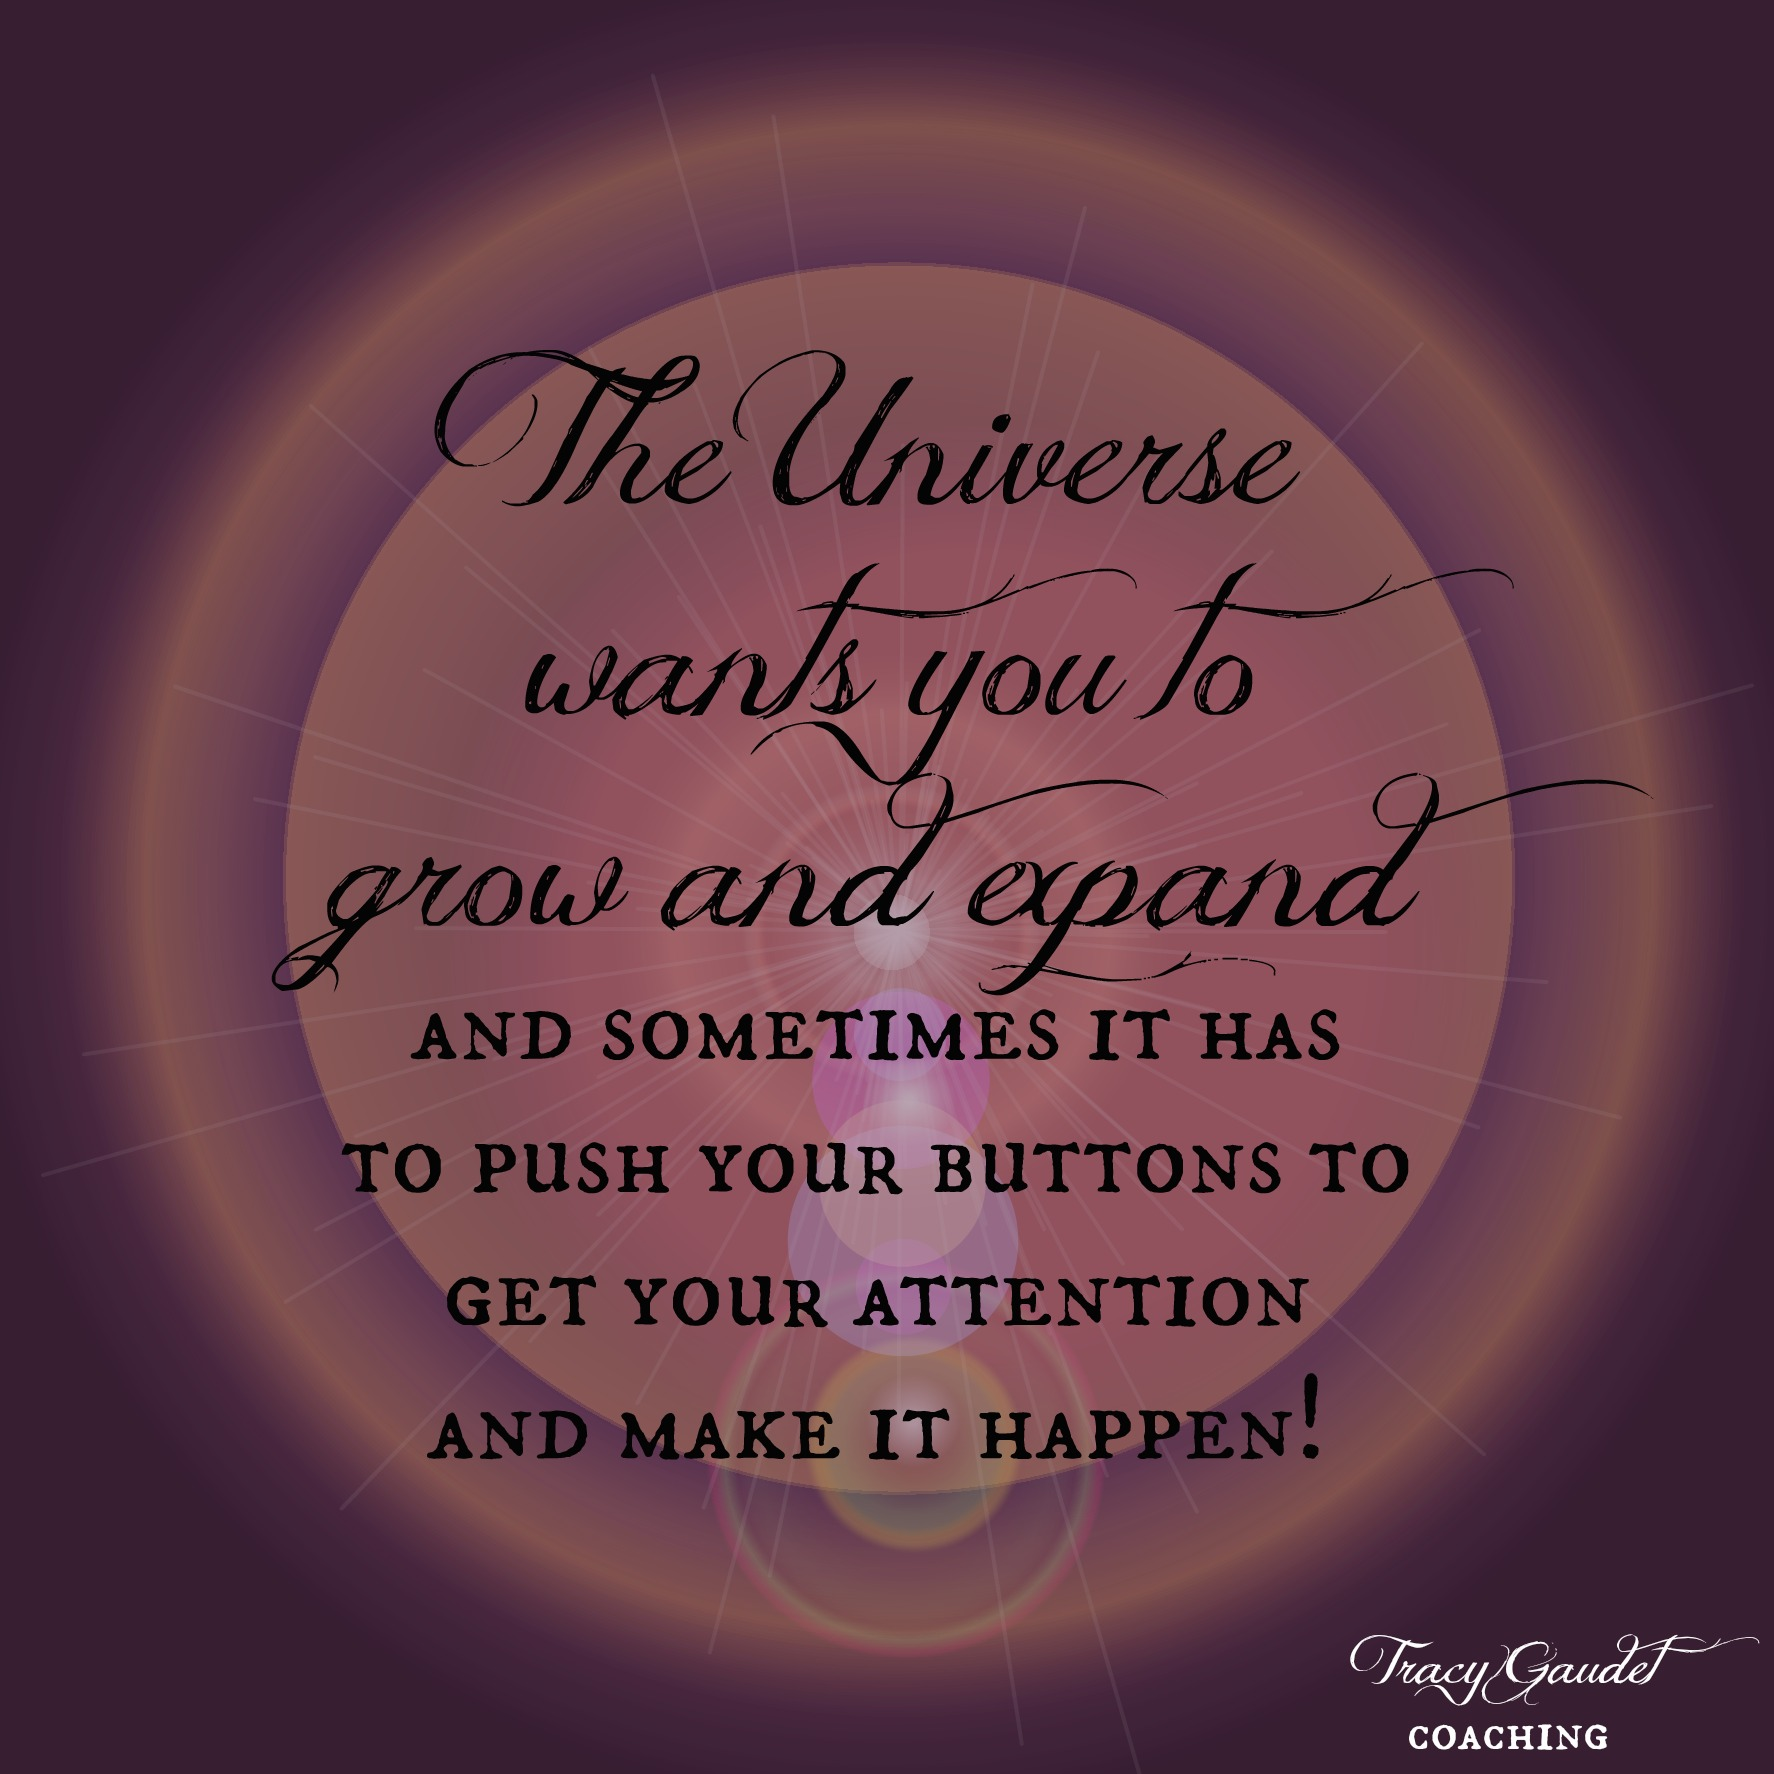 Law Of Attraction Quotes June Law Of Attraction Quotes  Tracy Gaudet Intuitive Happiness Coach